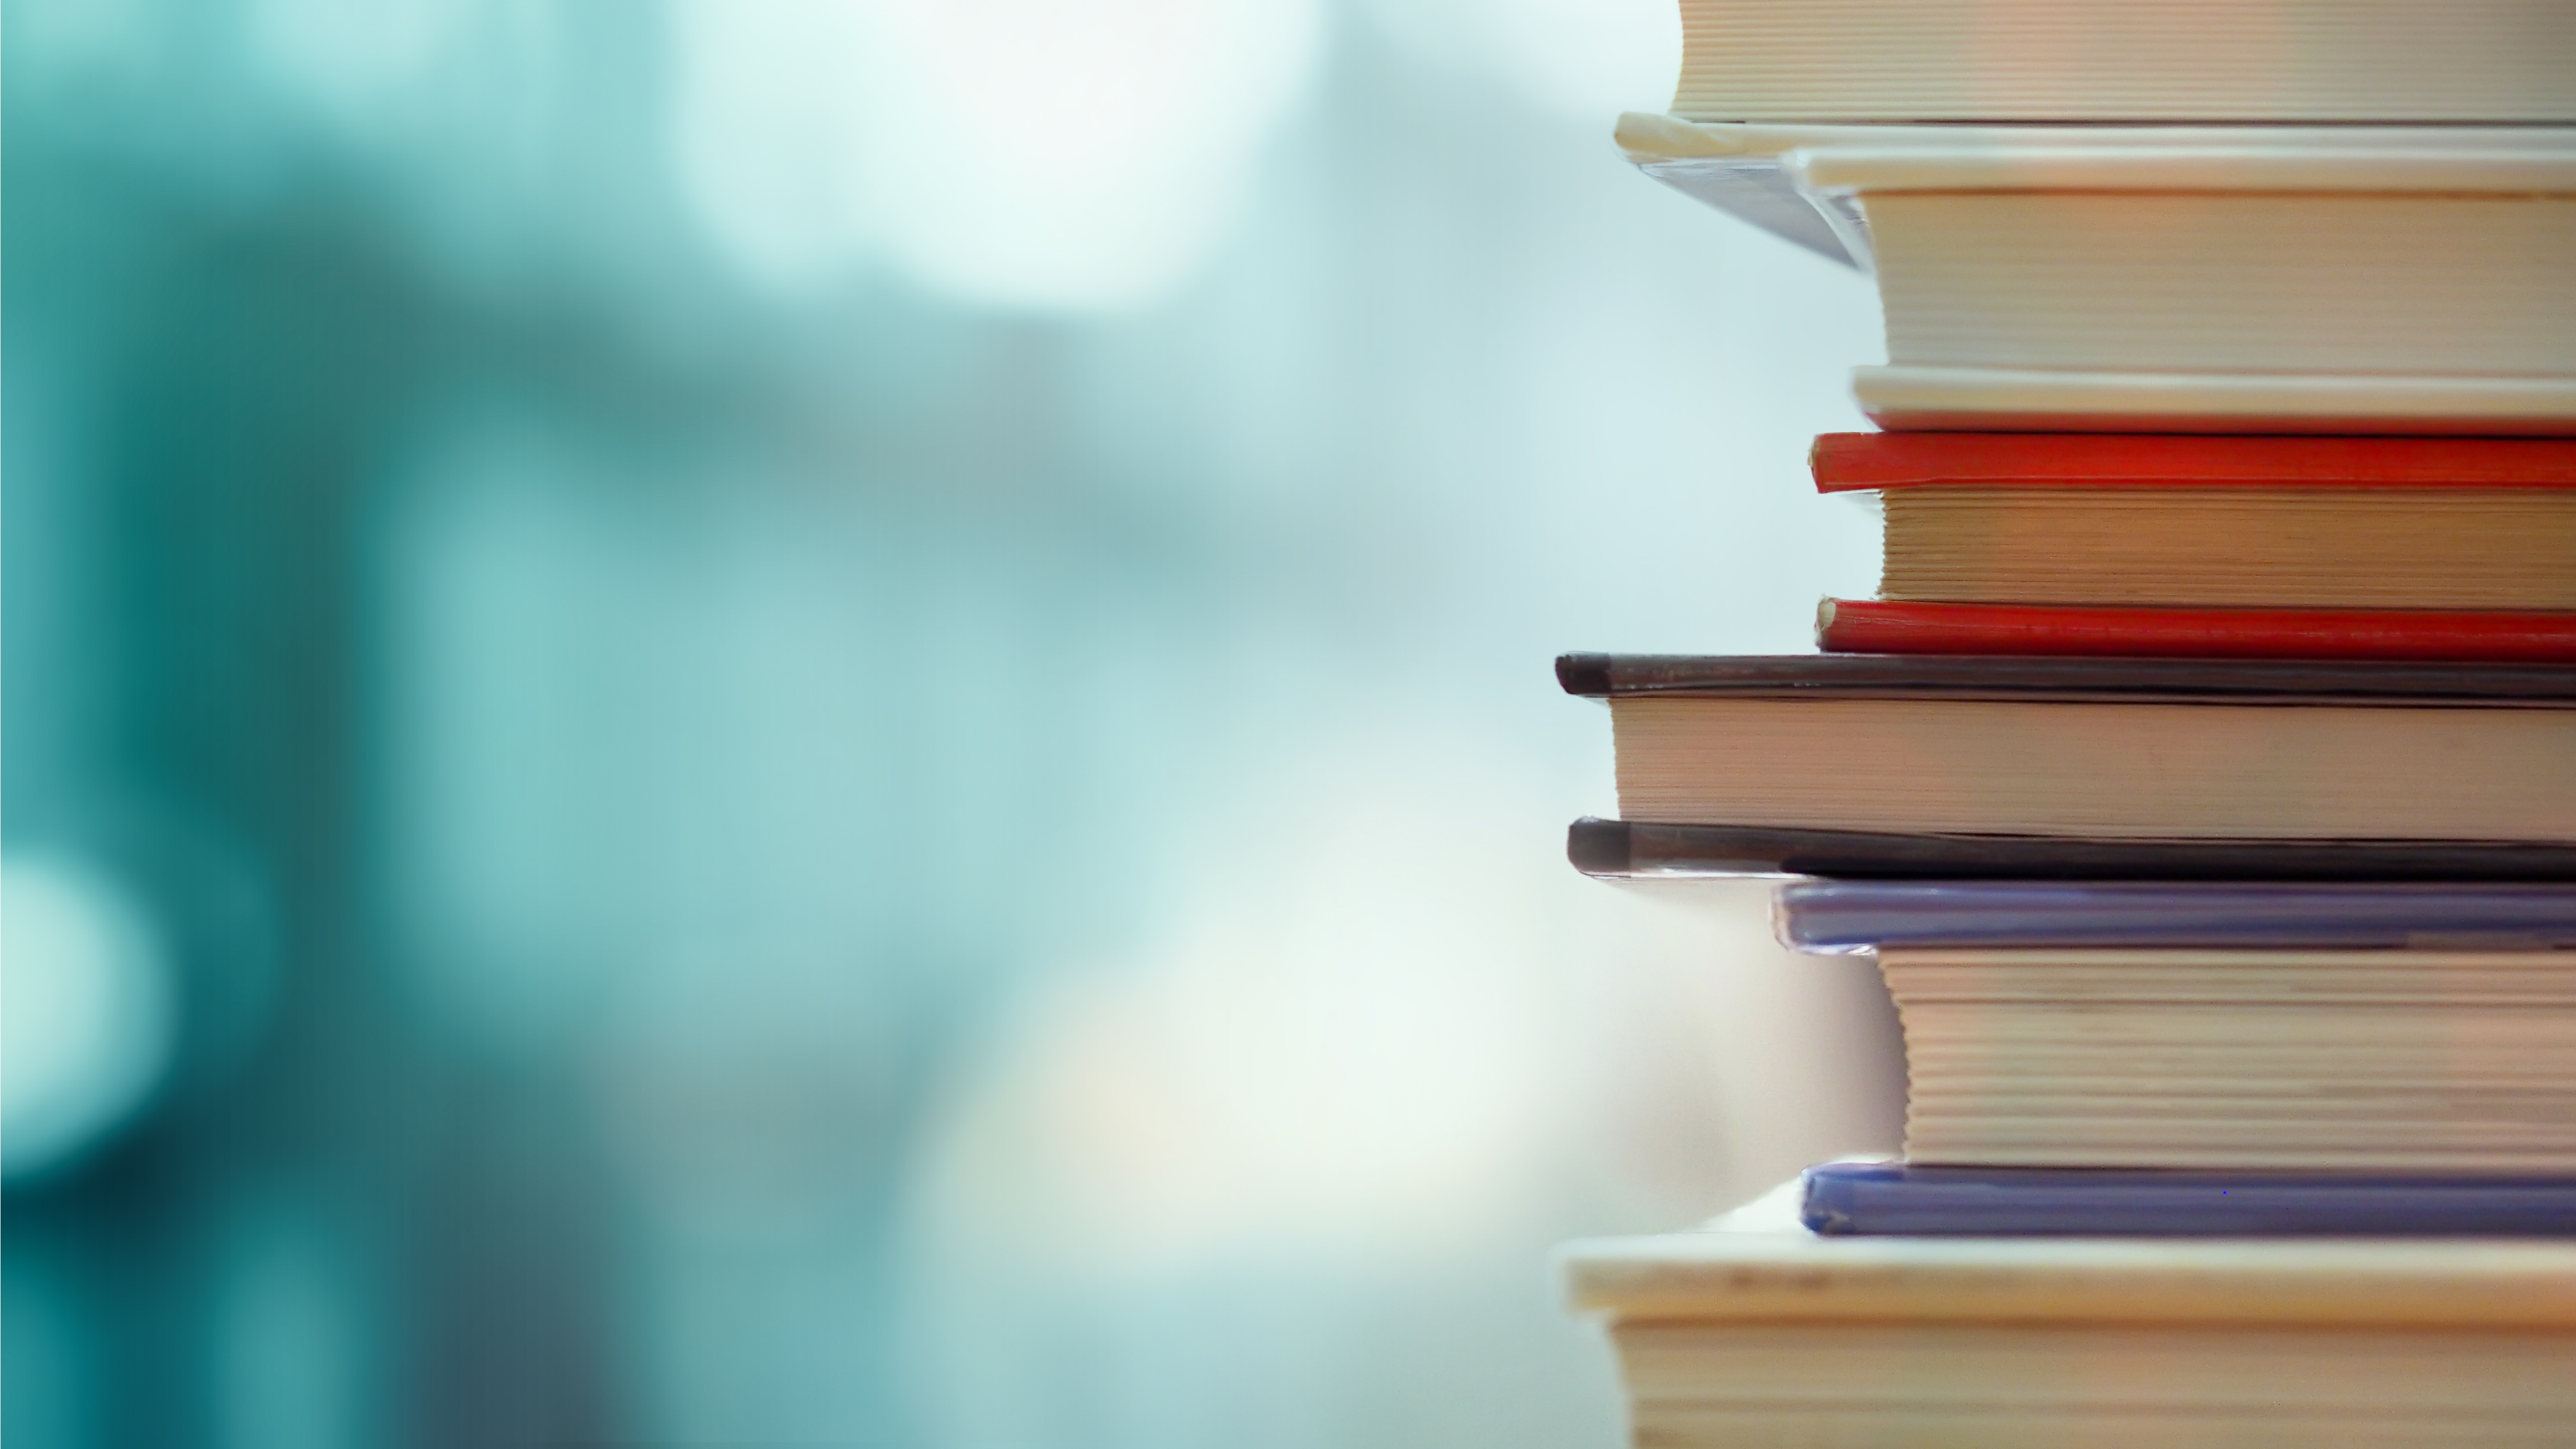 Our Top 5 Leadership Books